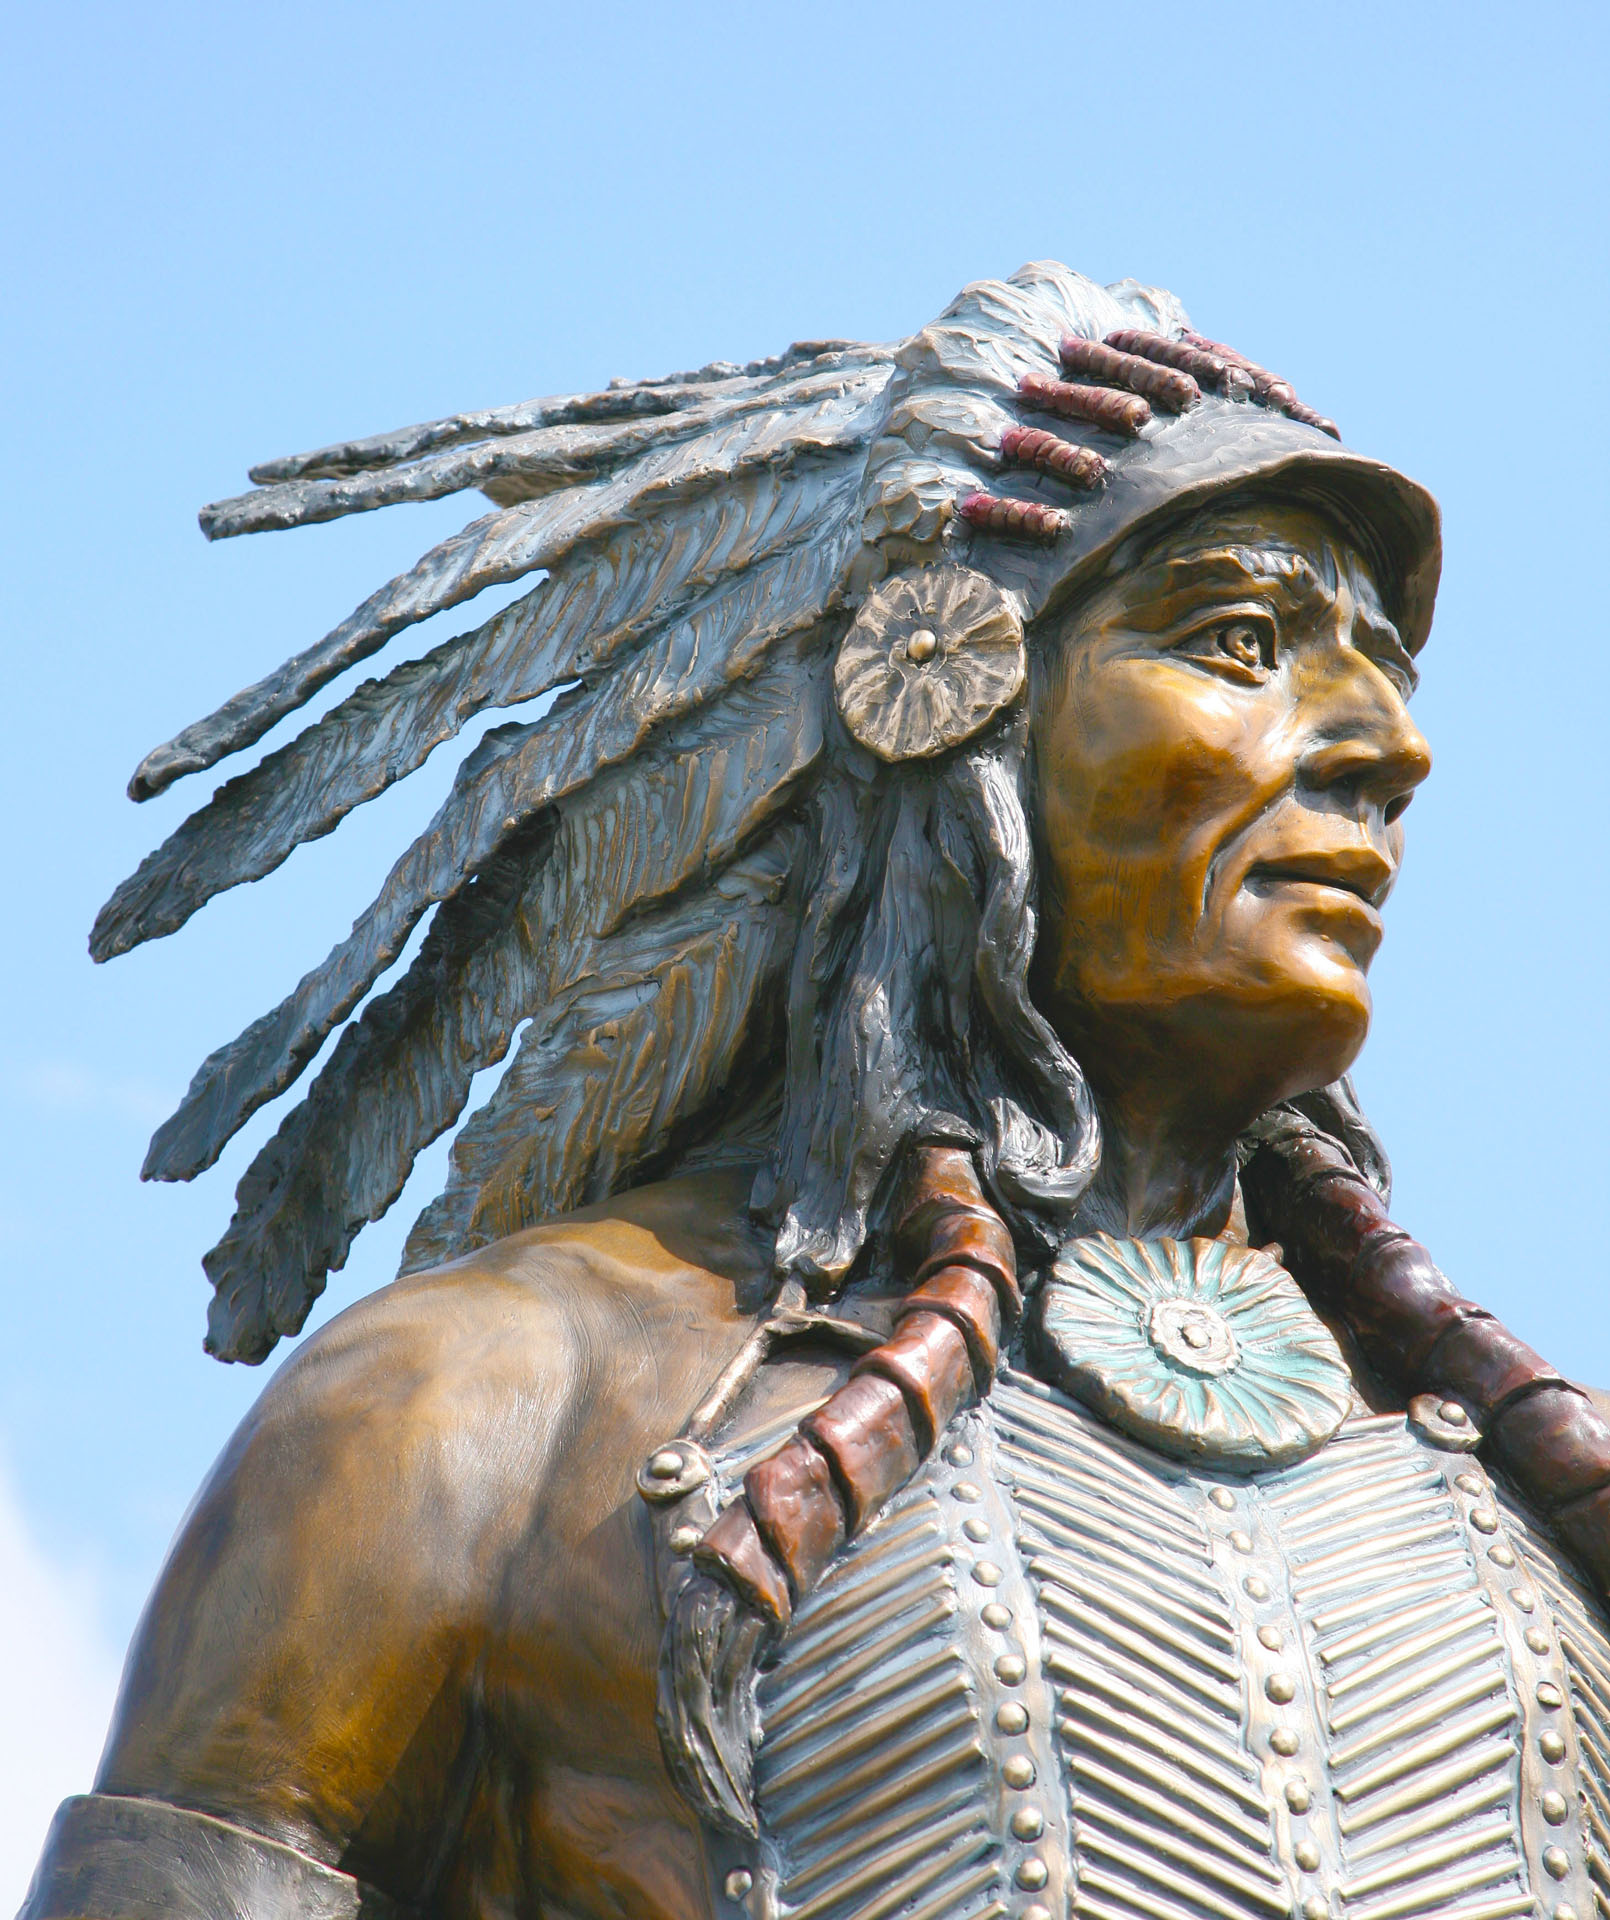 The Warrior, 120% life-size, price: $60,000.